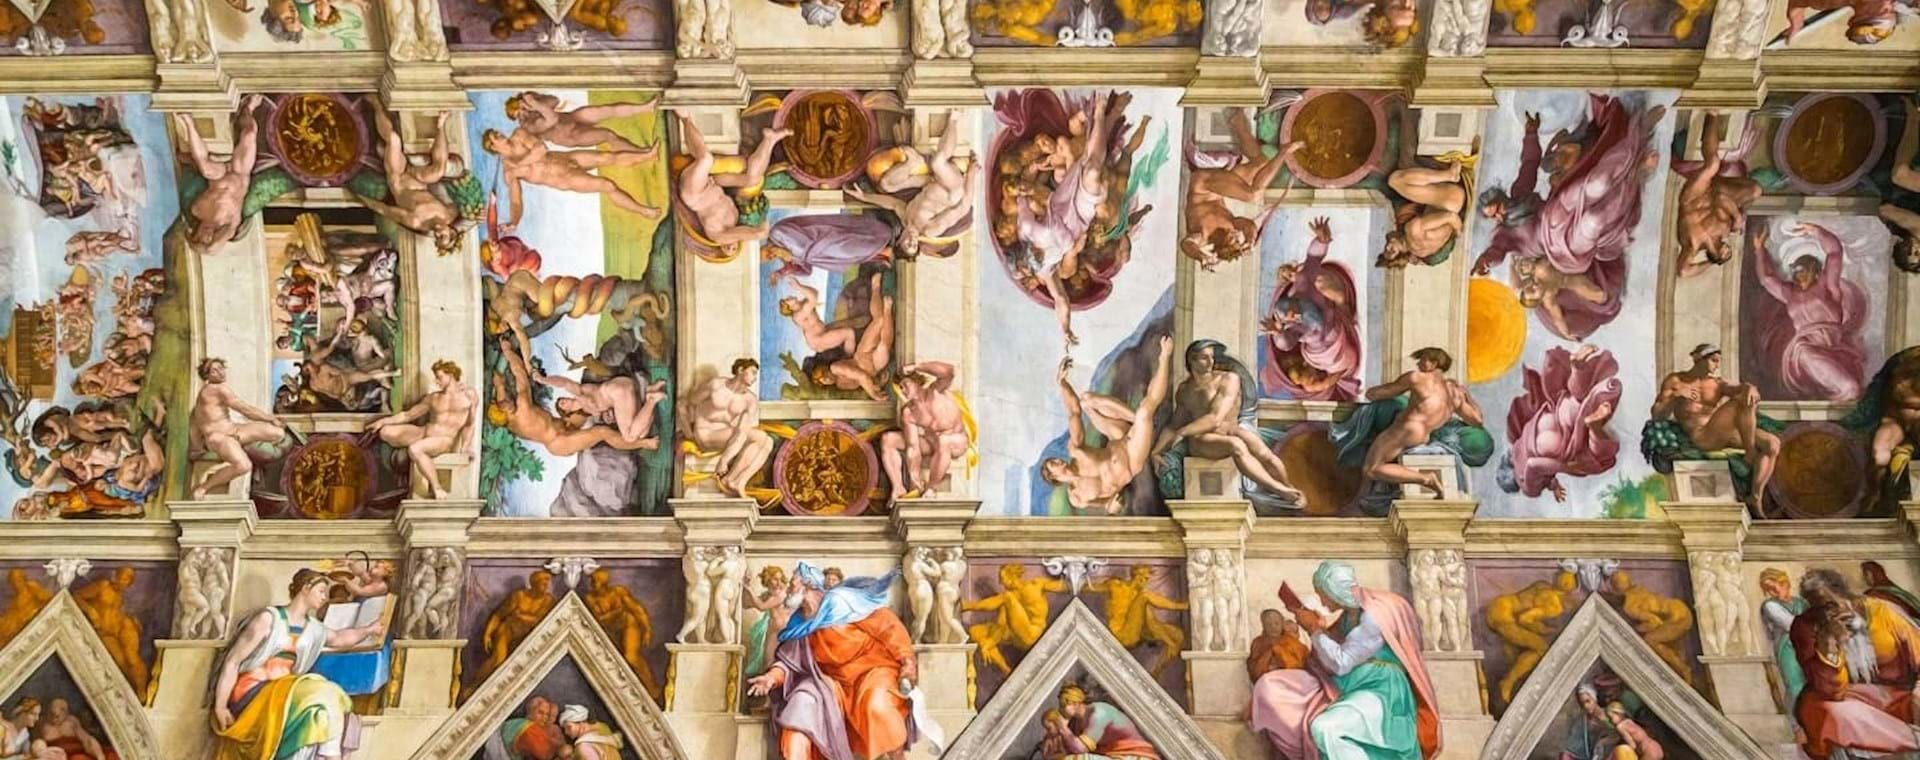 Exclusive First Entry: Sistine Chapel Express, St. Peter's Basilica & Vatican Crypts Tour